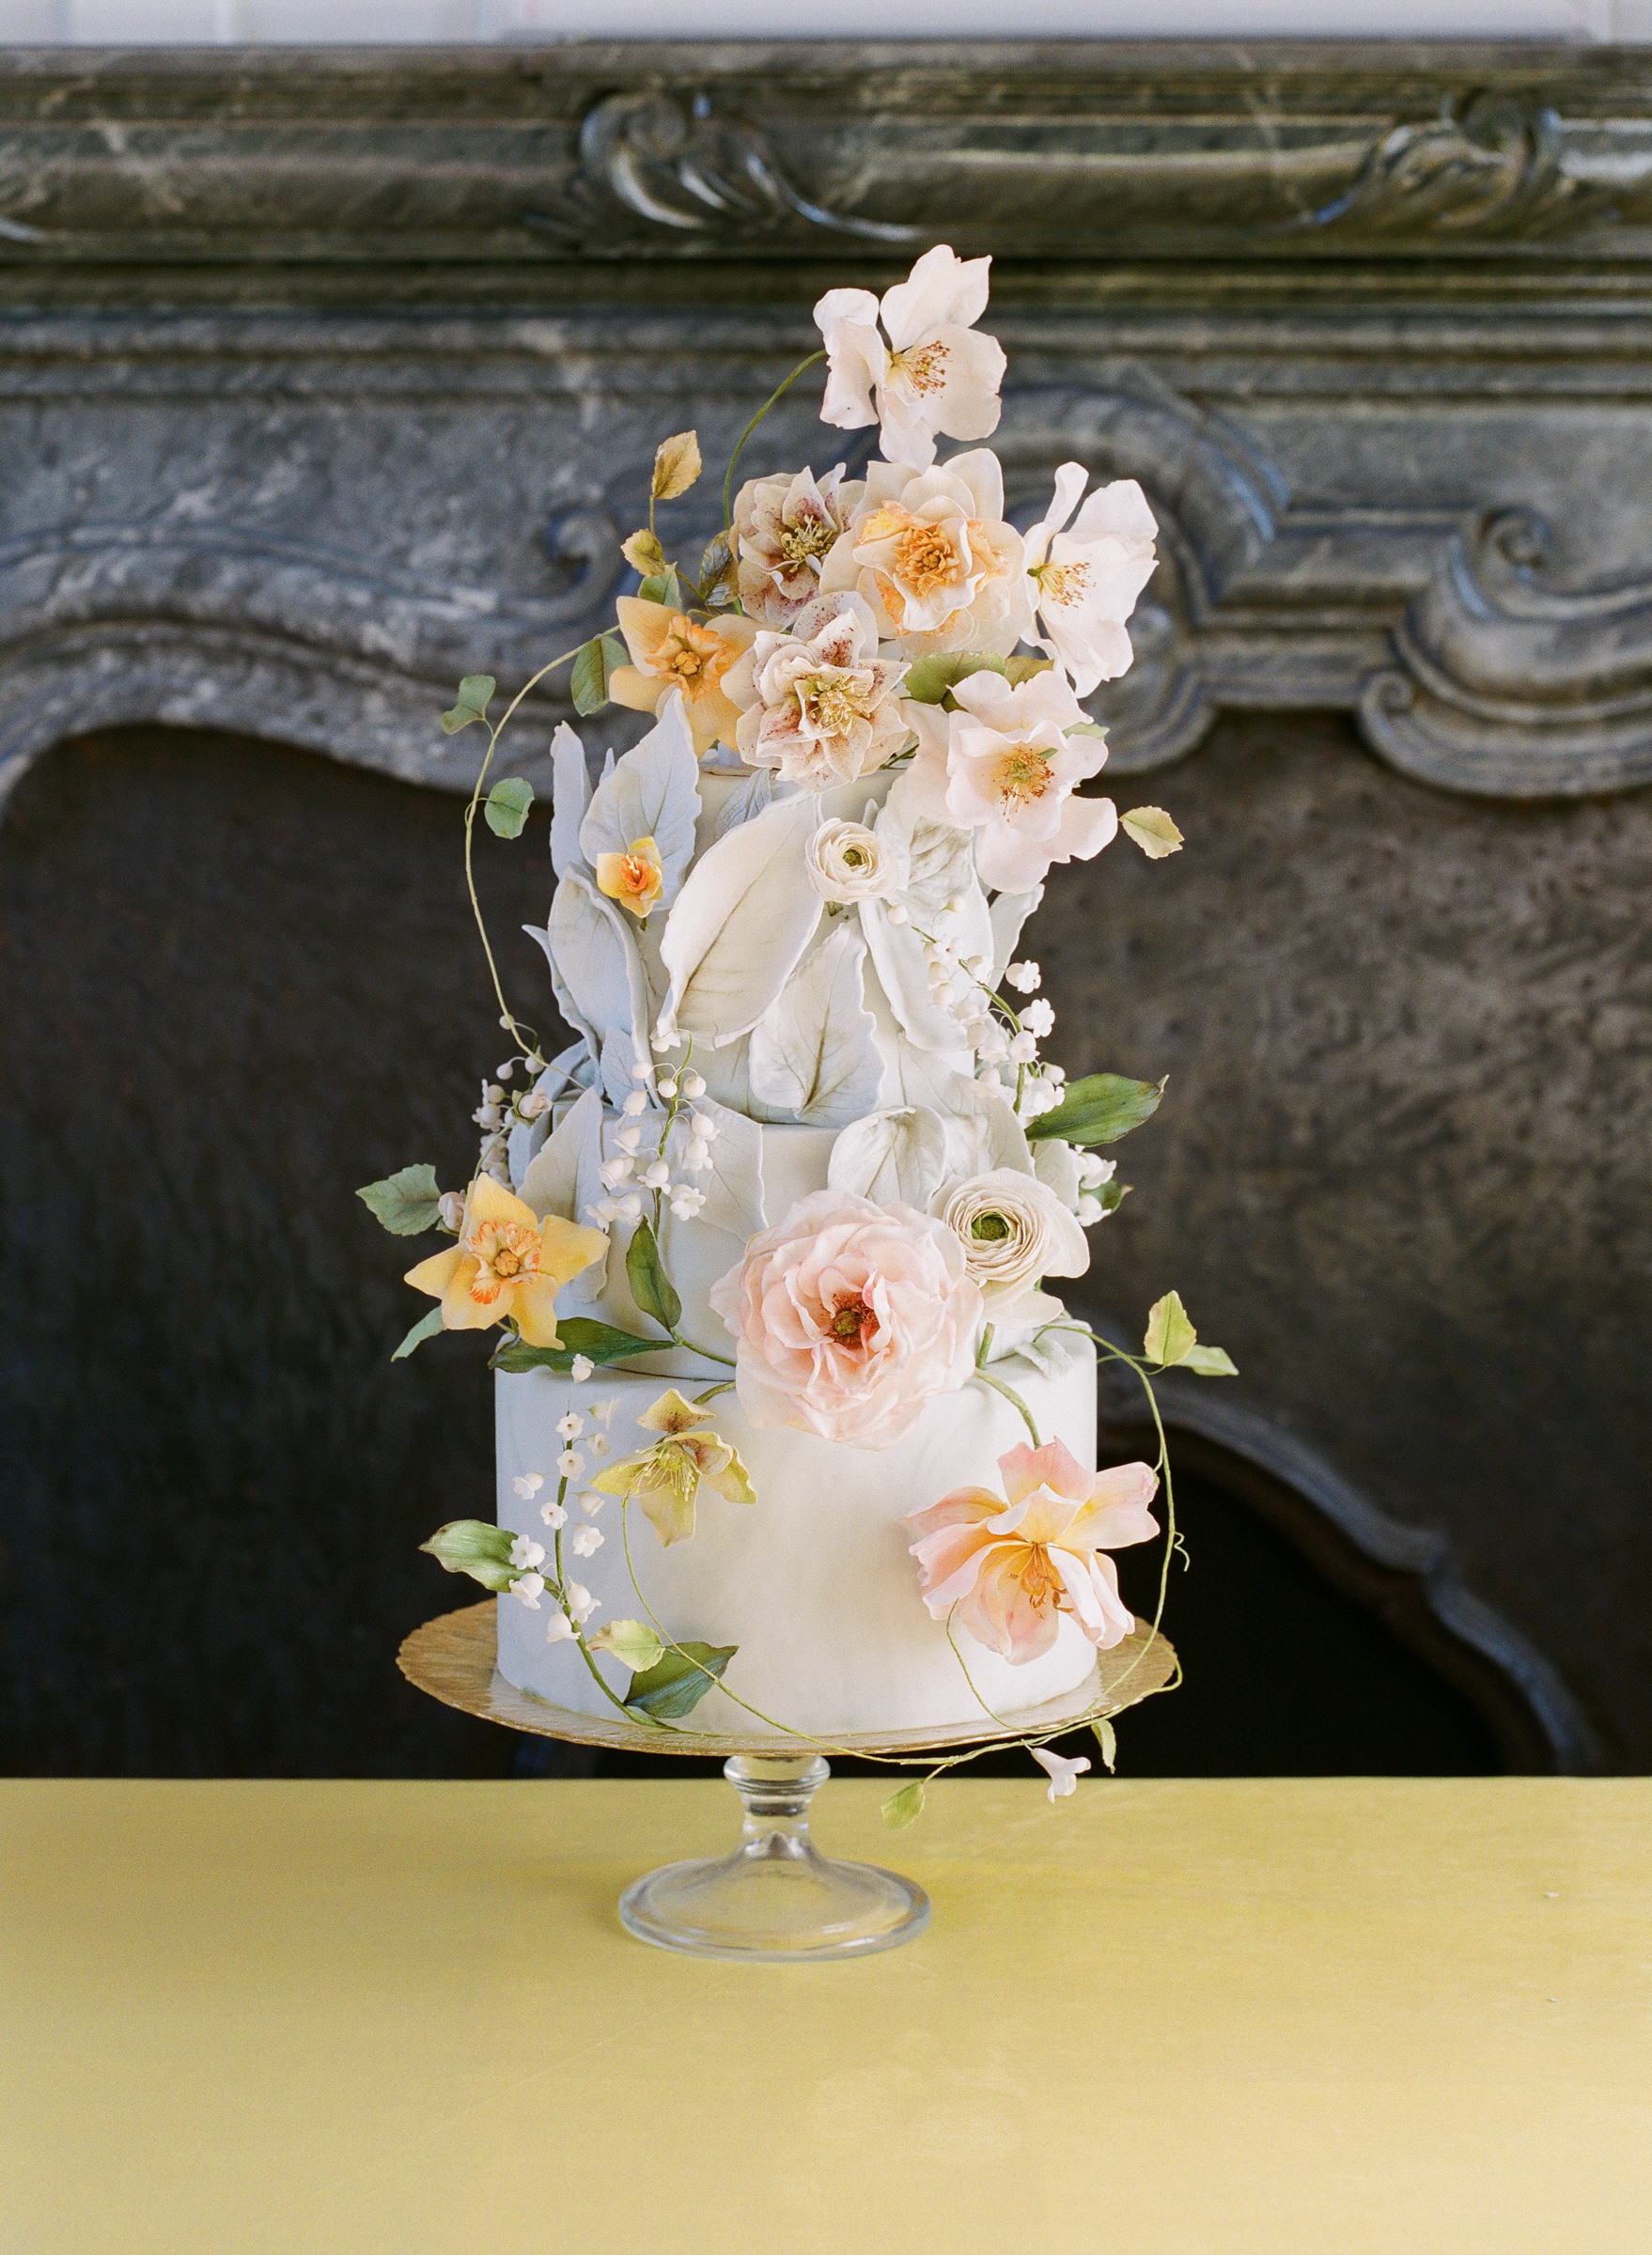 tiered-wedding-cake-decorated-with-yellow-and-pink-flowers-photo-by-corbin-gurkin-worlds-best-wedding-photos